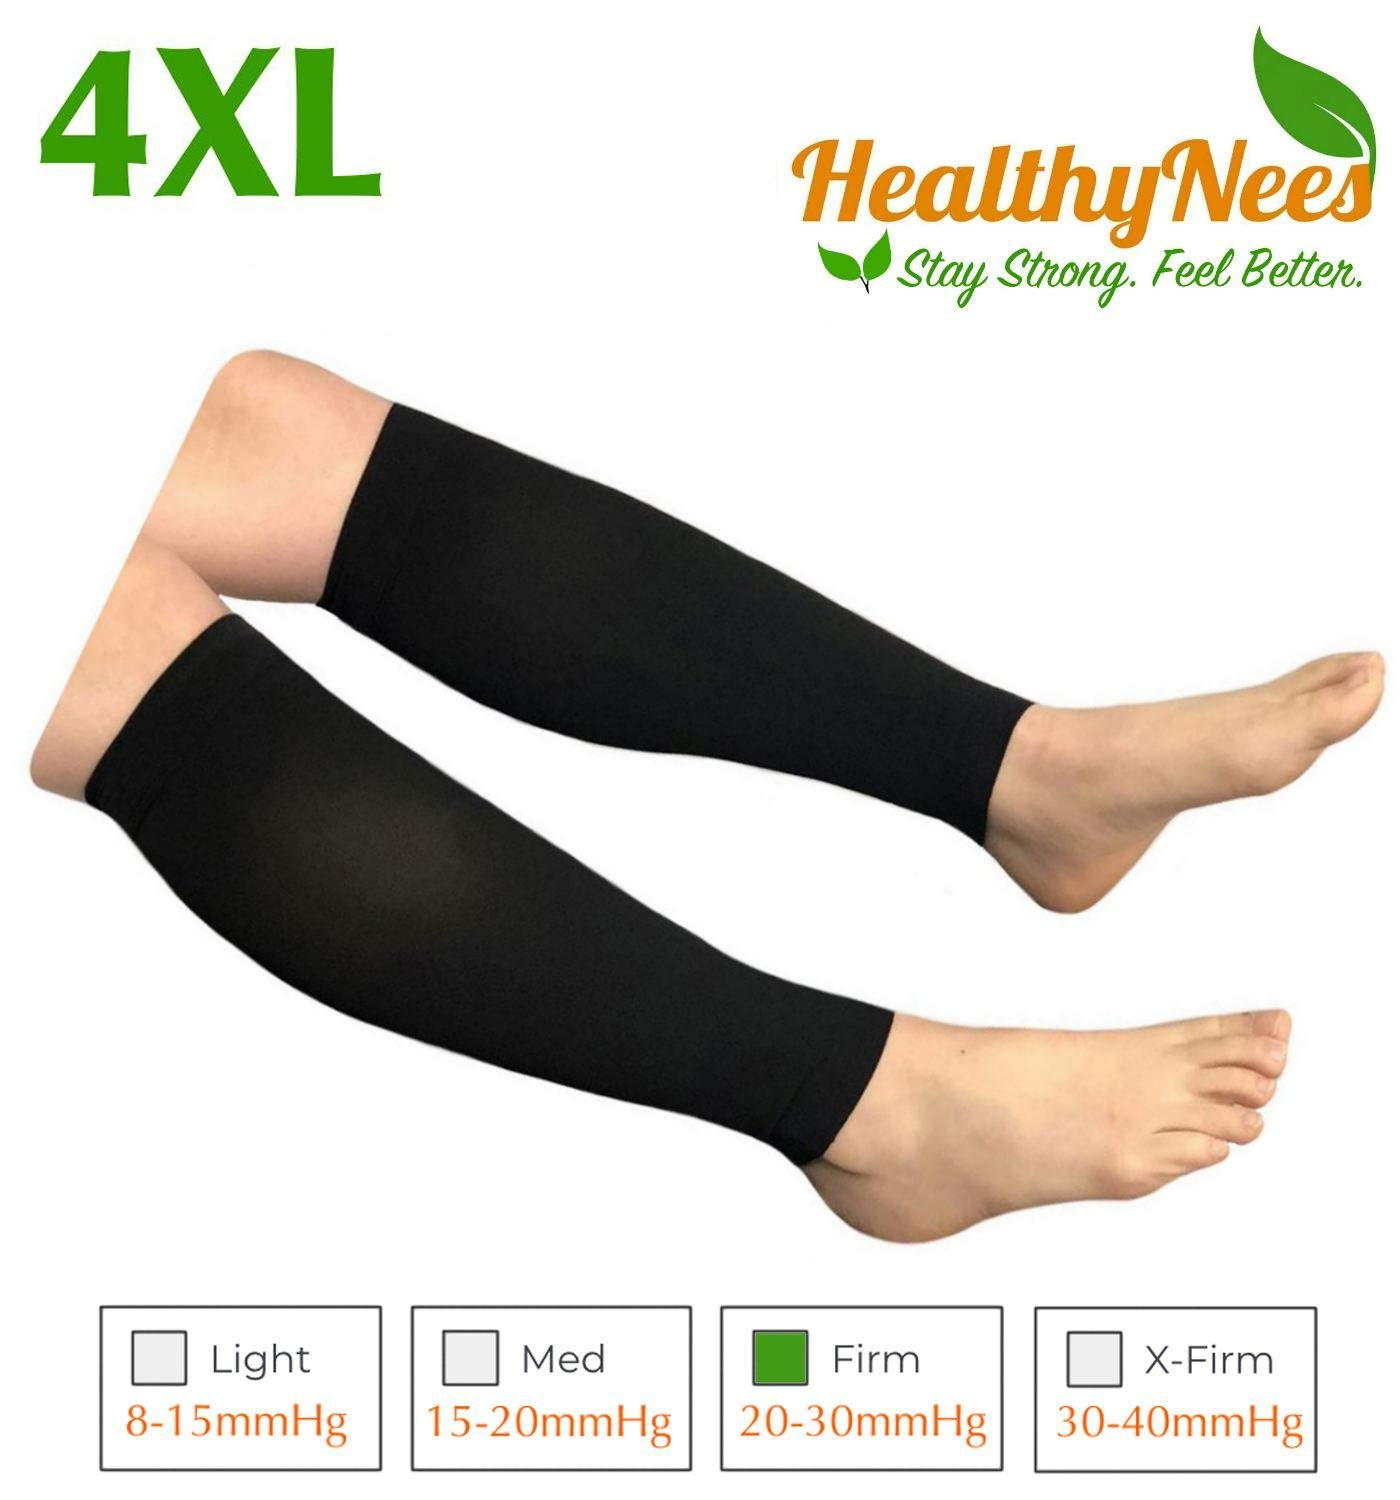 HealthyNees Shin Calf Sleeve 20-30 mmHg Medical Compression Circulation Extra Wide Plus Size Big Tall Leg Thick Calves Firm Support (Black, Wide Calf 4XL) by HealthyNees